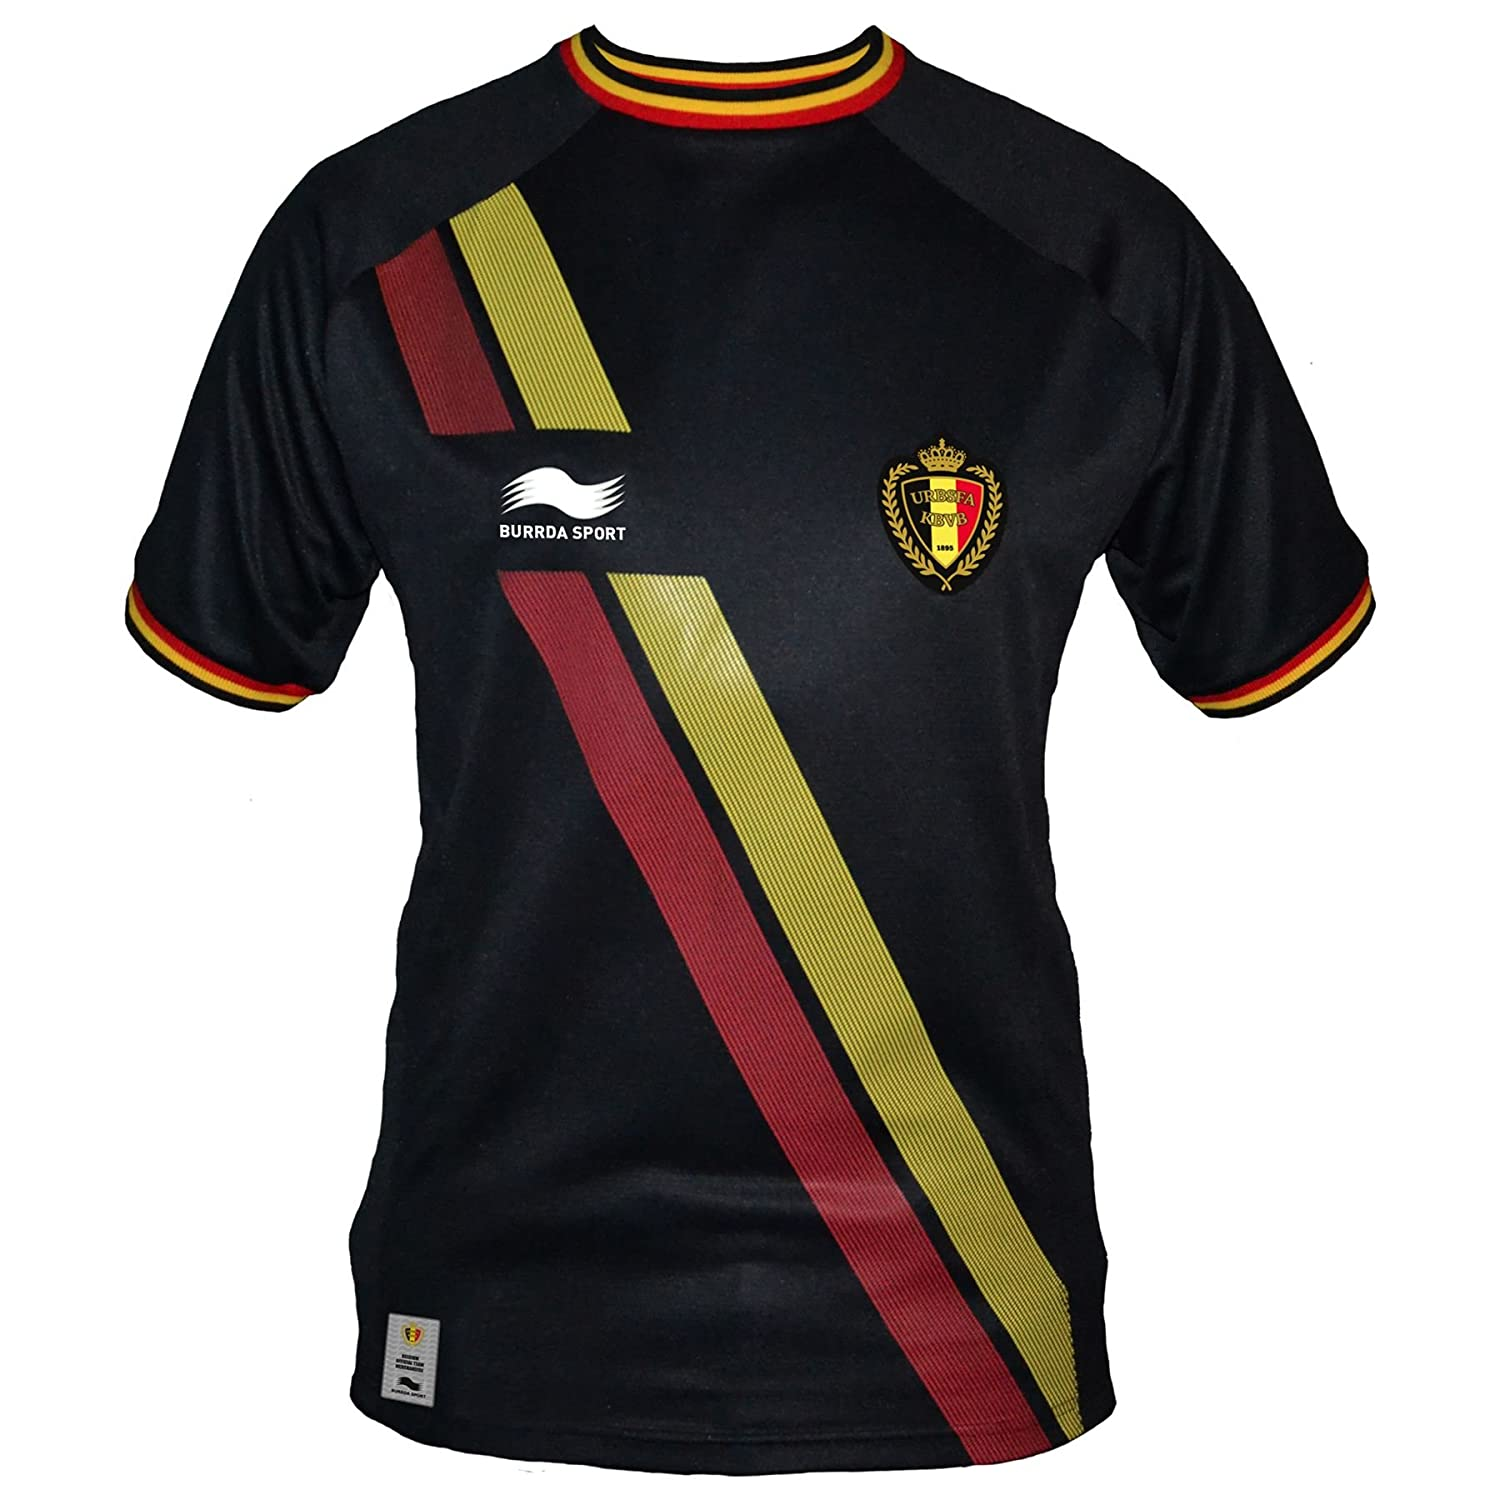 2014-15 Belgium Away World Cup Football Shirt Burrda